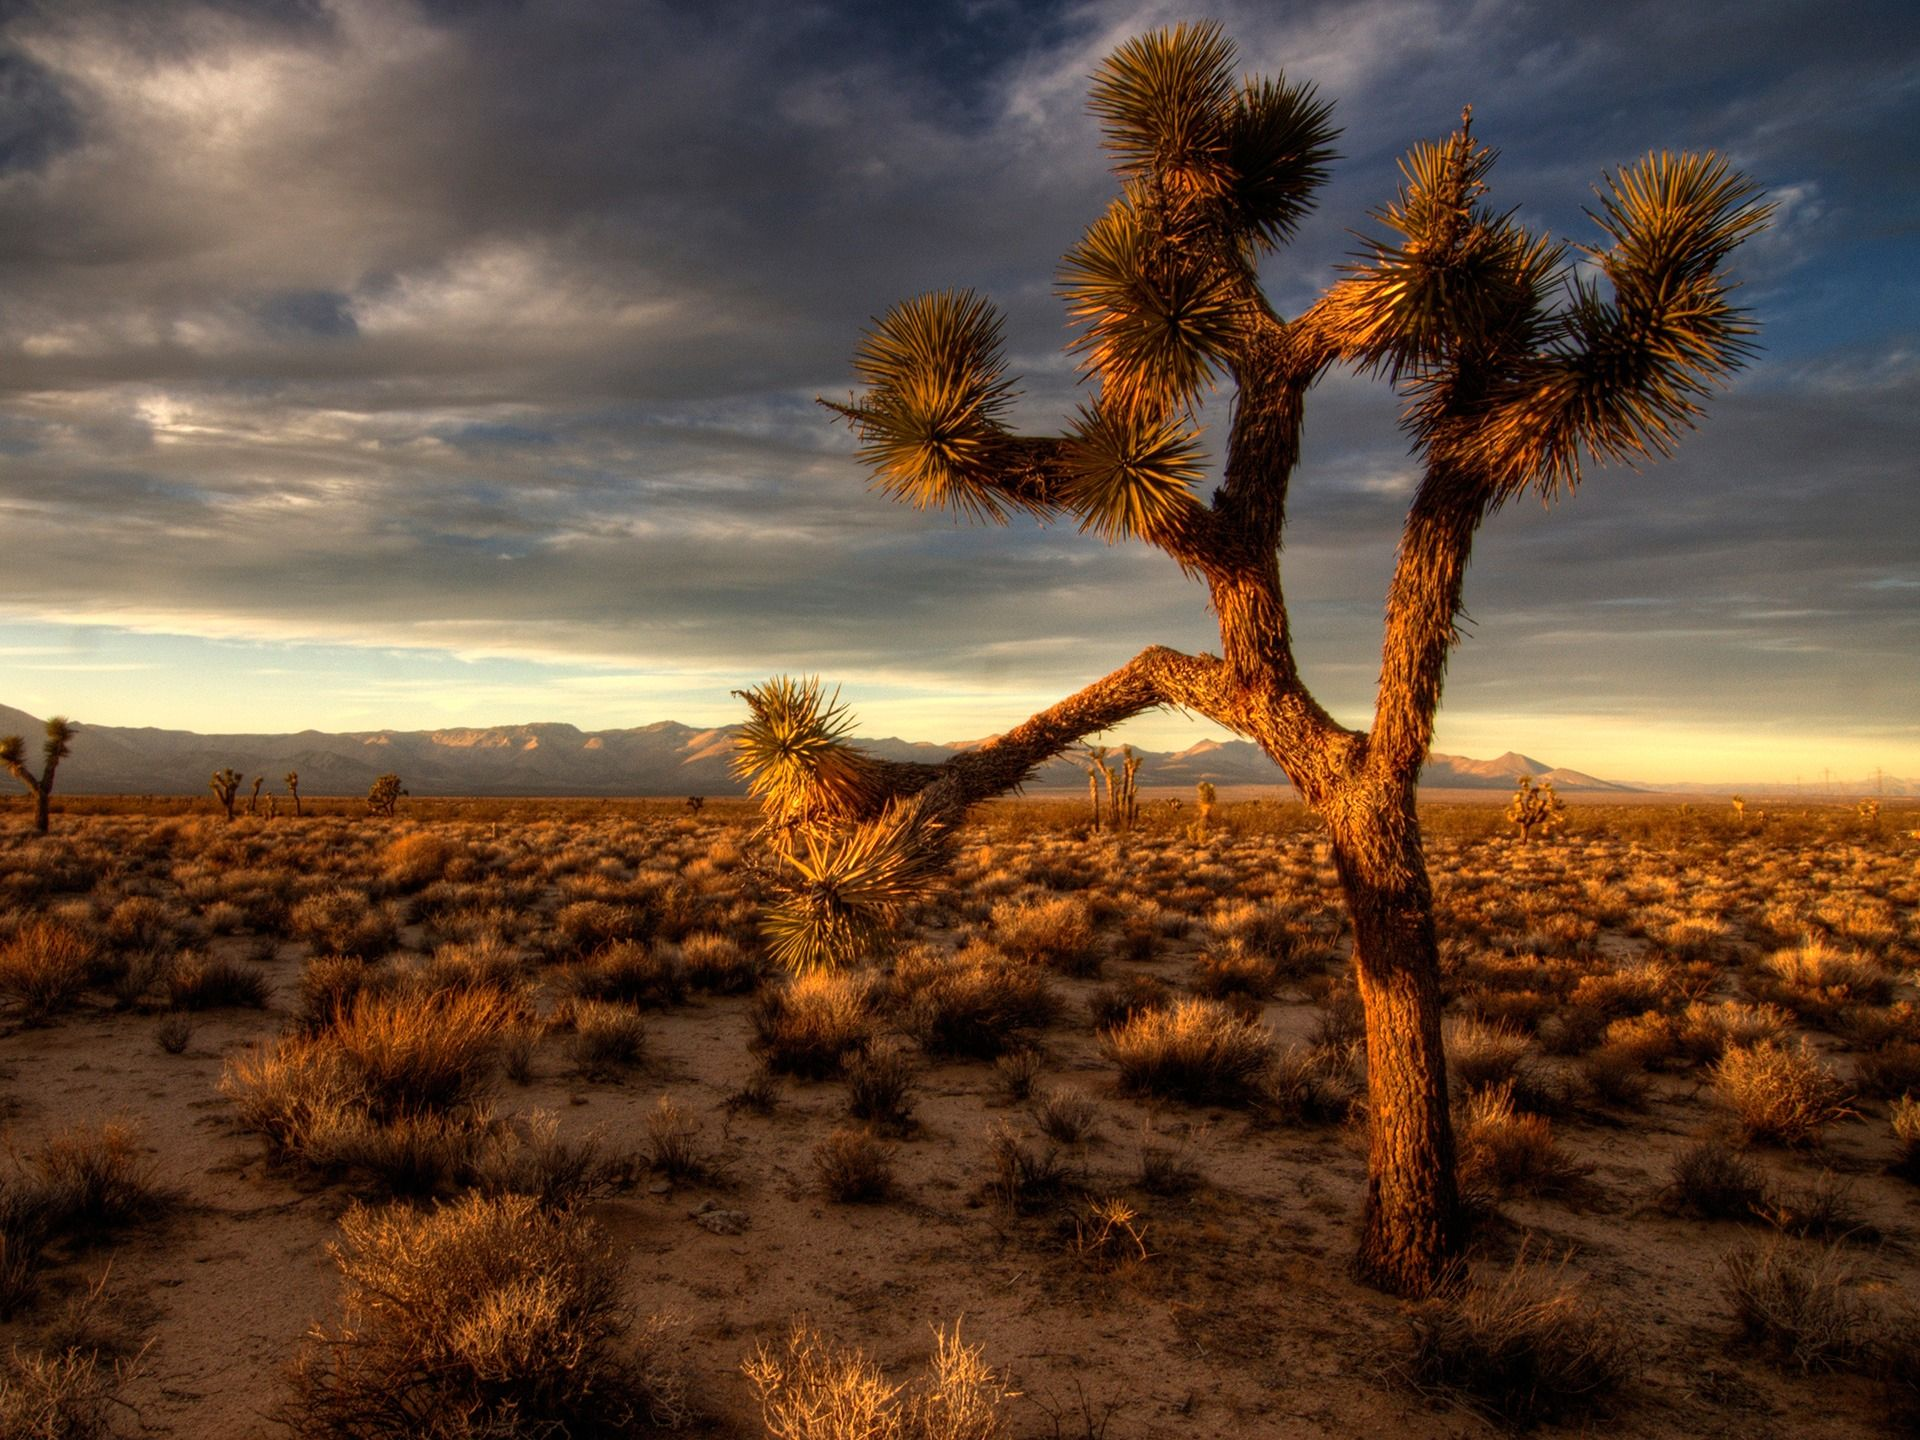 joshua tree computer wallpaper 53125